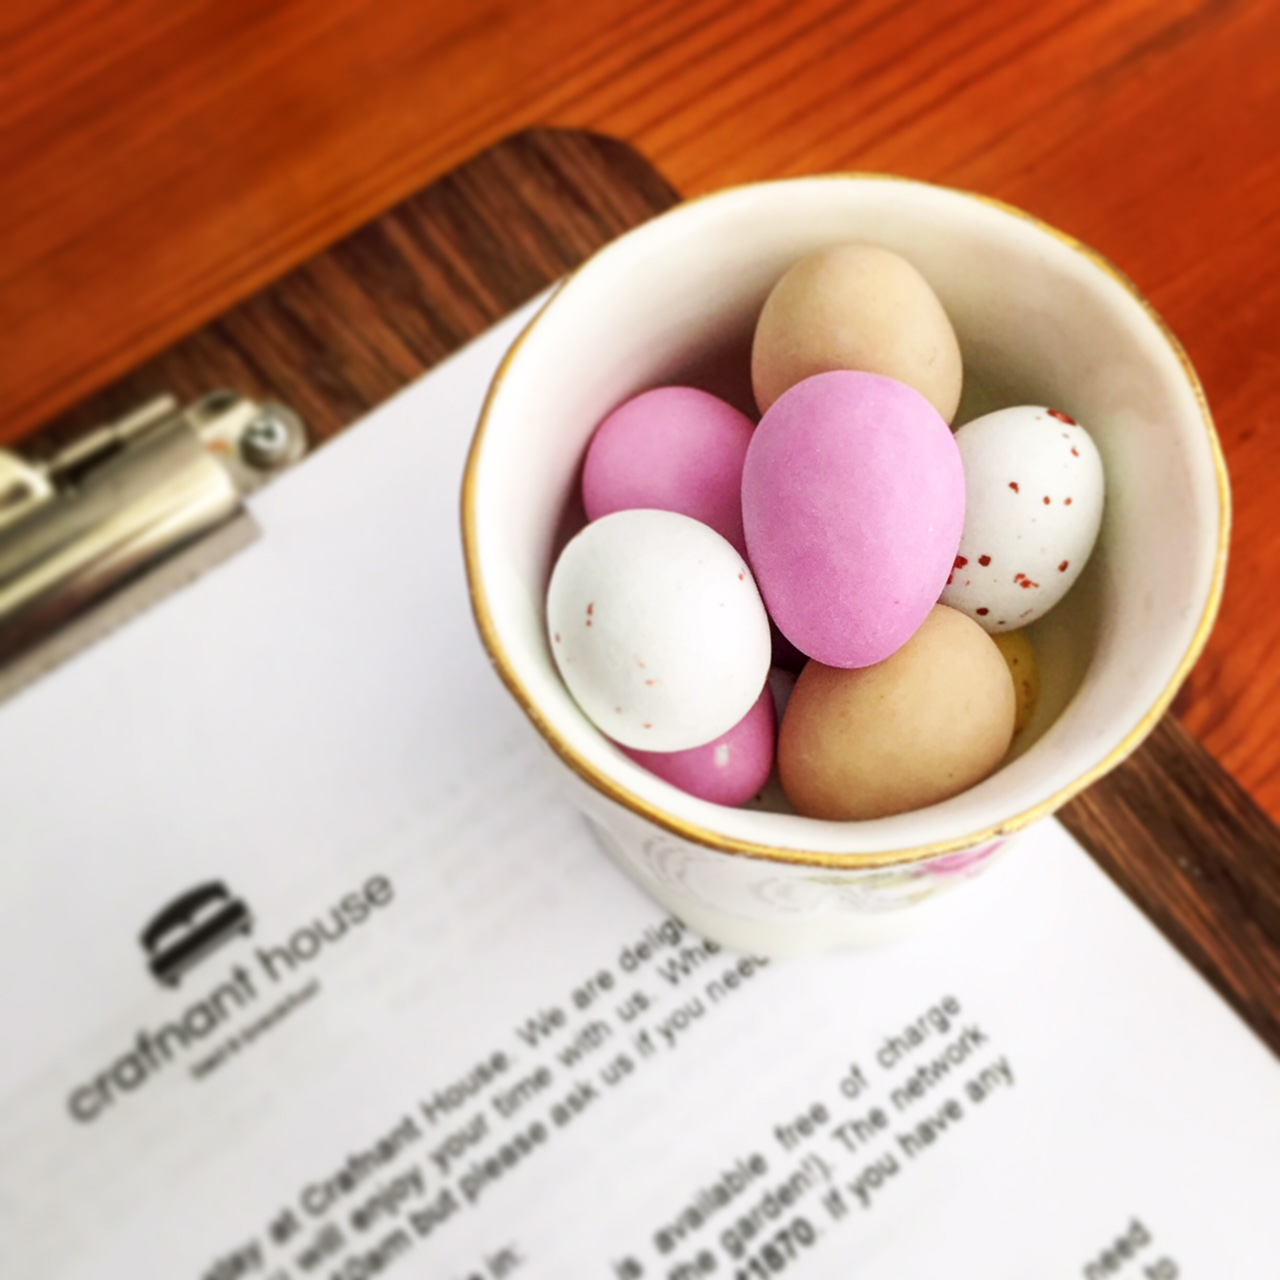 - Easter came and went in a busy blur of lovely guests, mixed weather and too much chocolate! Mini-eggs were left in the guest rooms :-)